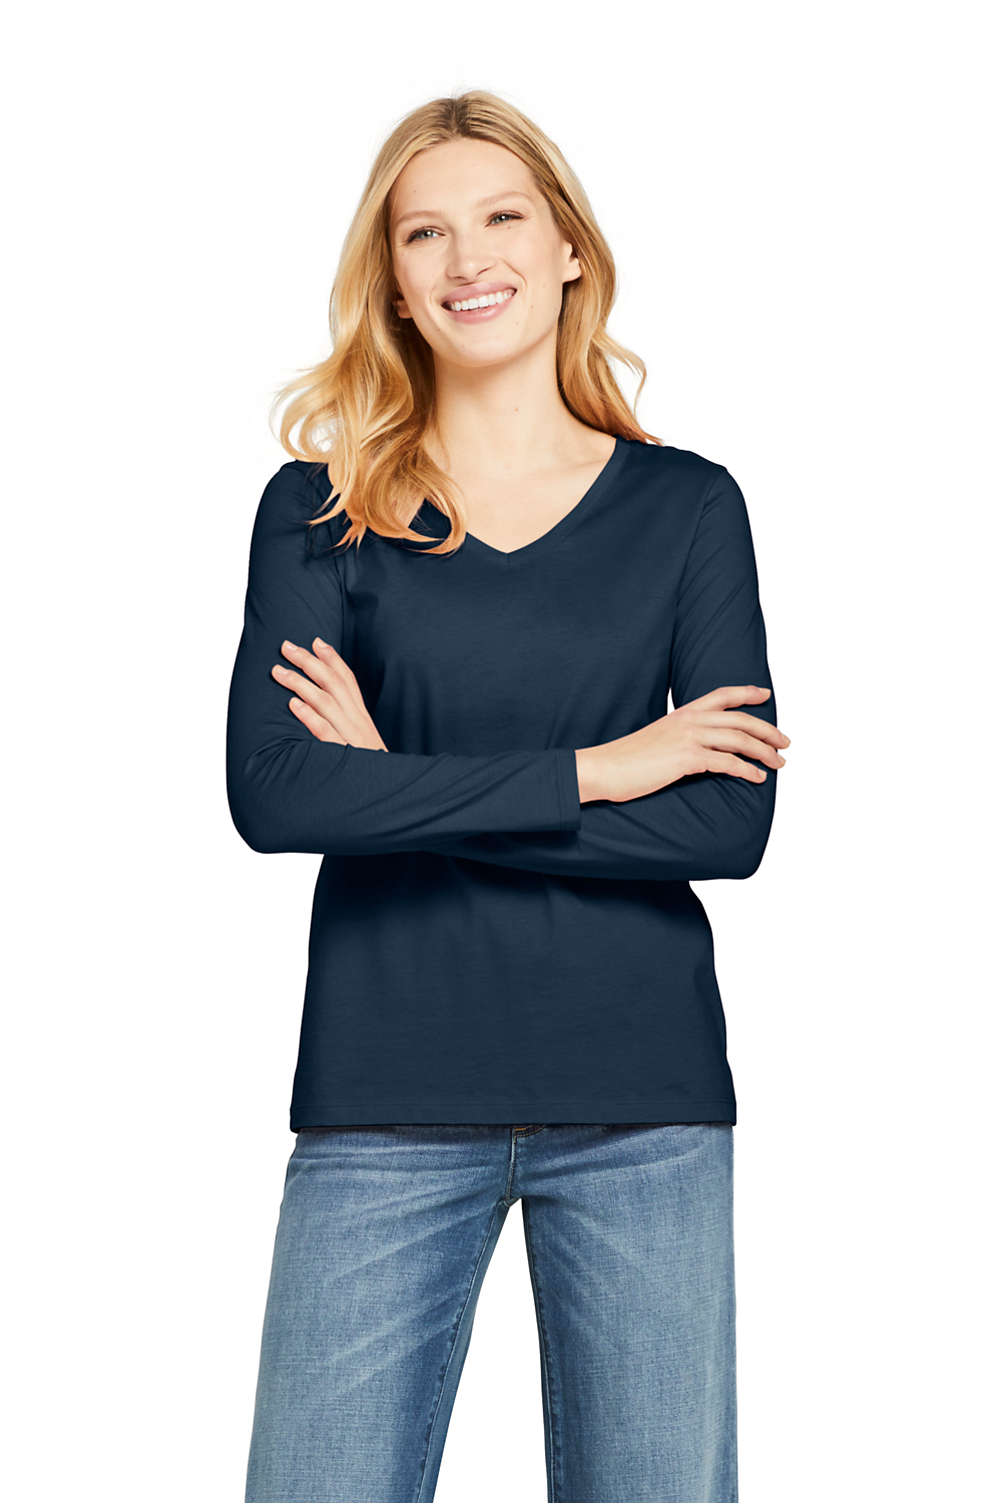 f70dbb863 Women's Relaxed Fit Supima Cotton V-neck Long Sleeve T-shirt from Lands' End